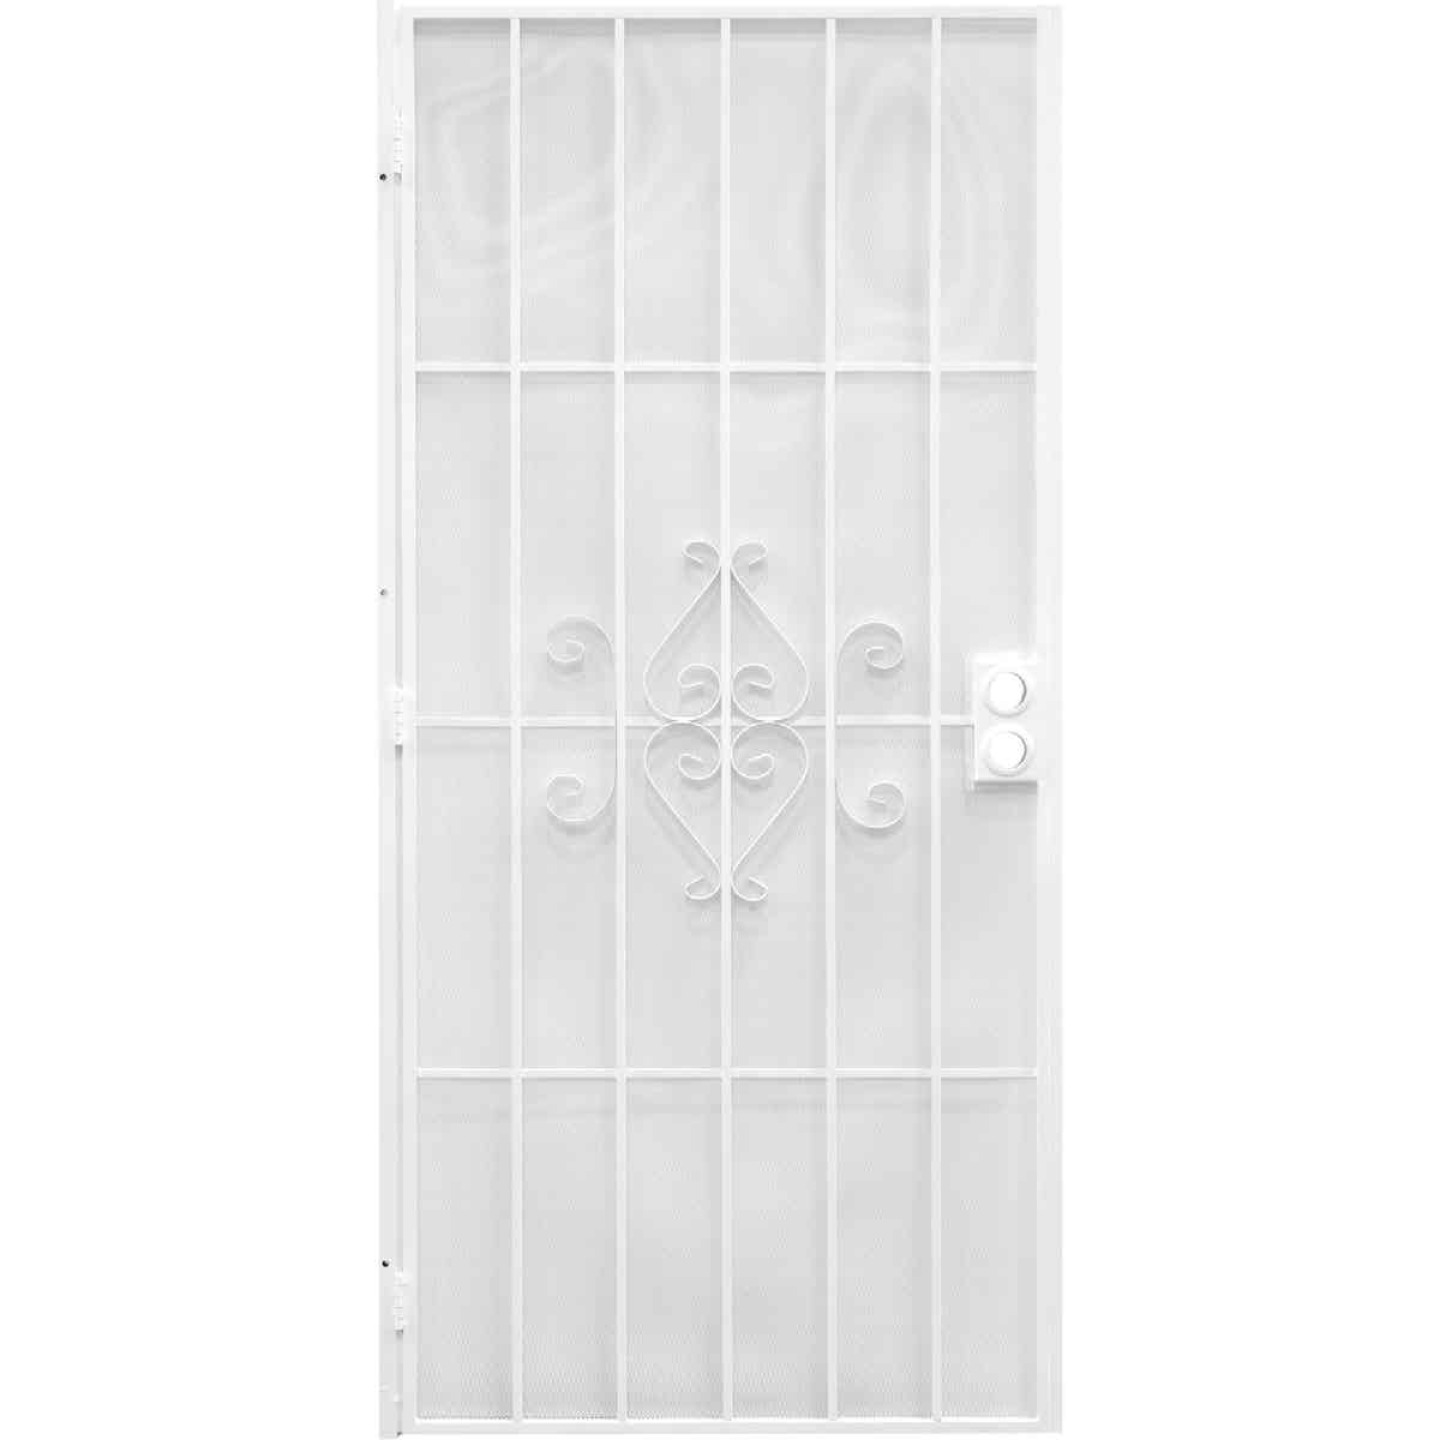 Precision Regal 32 In. W x 80 In. H White Steel Security Door Image 1